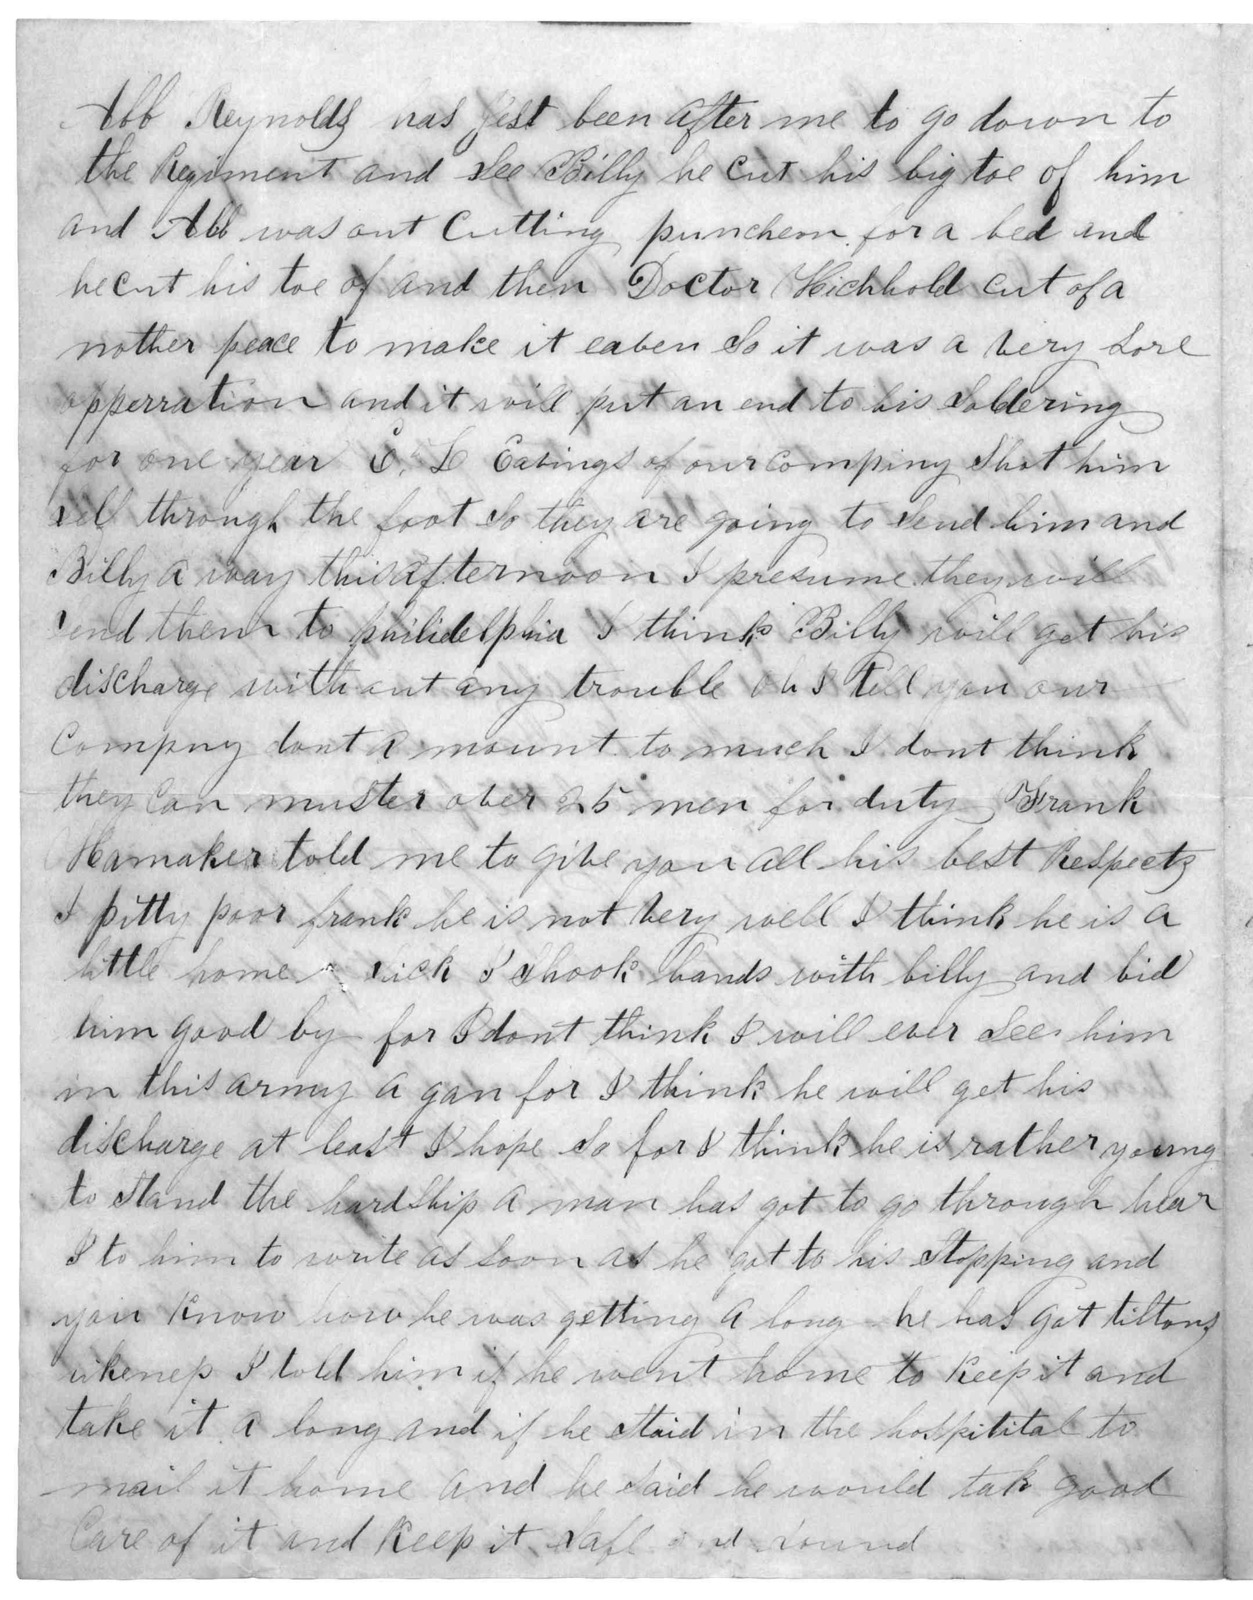 Letter from Joseph F. Green to Juliana Smith Reynolds, June 21, 1862